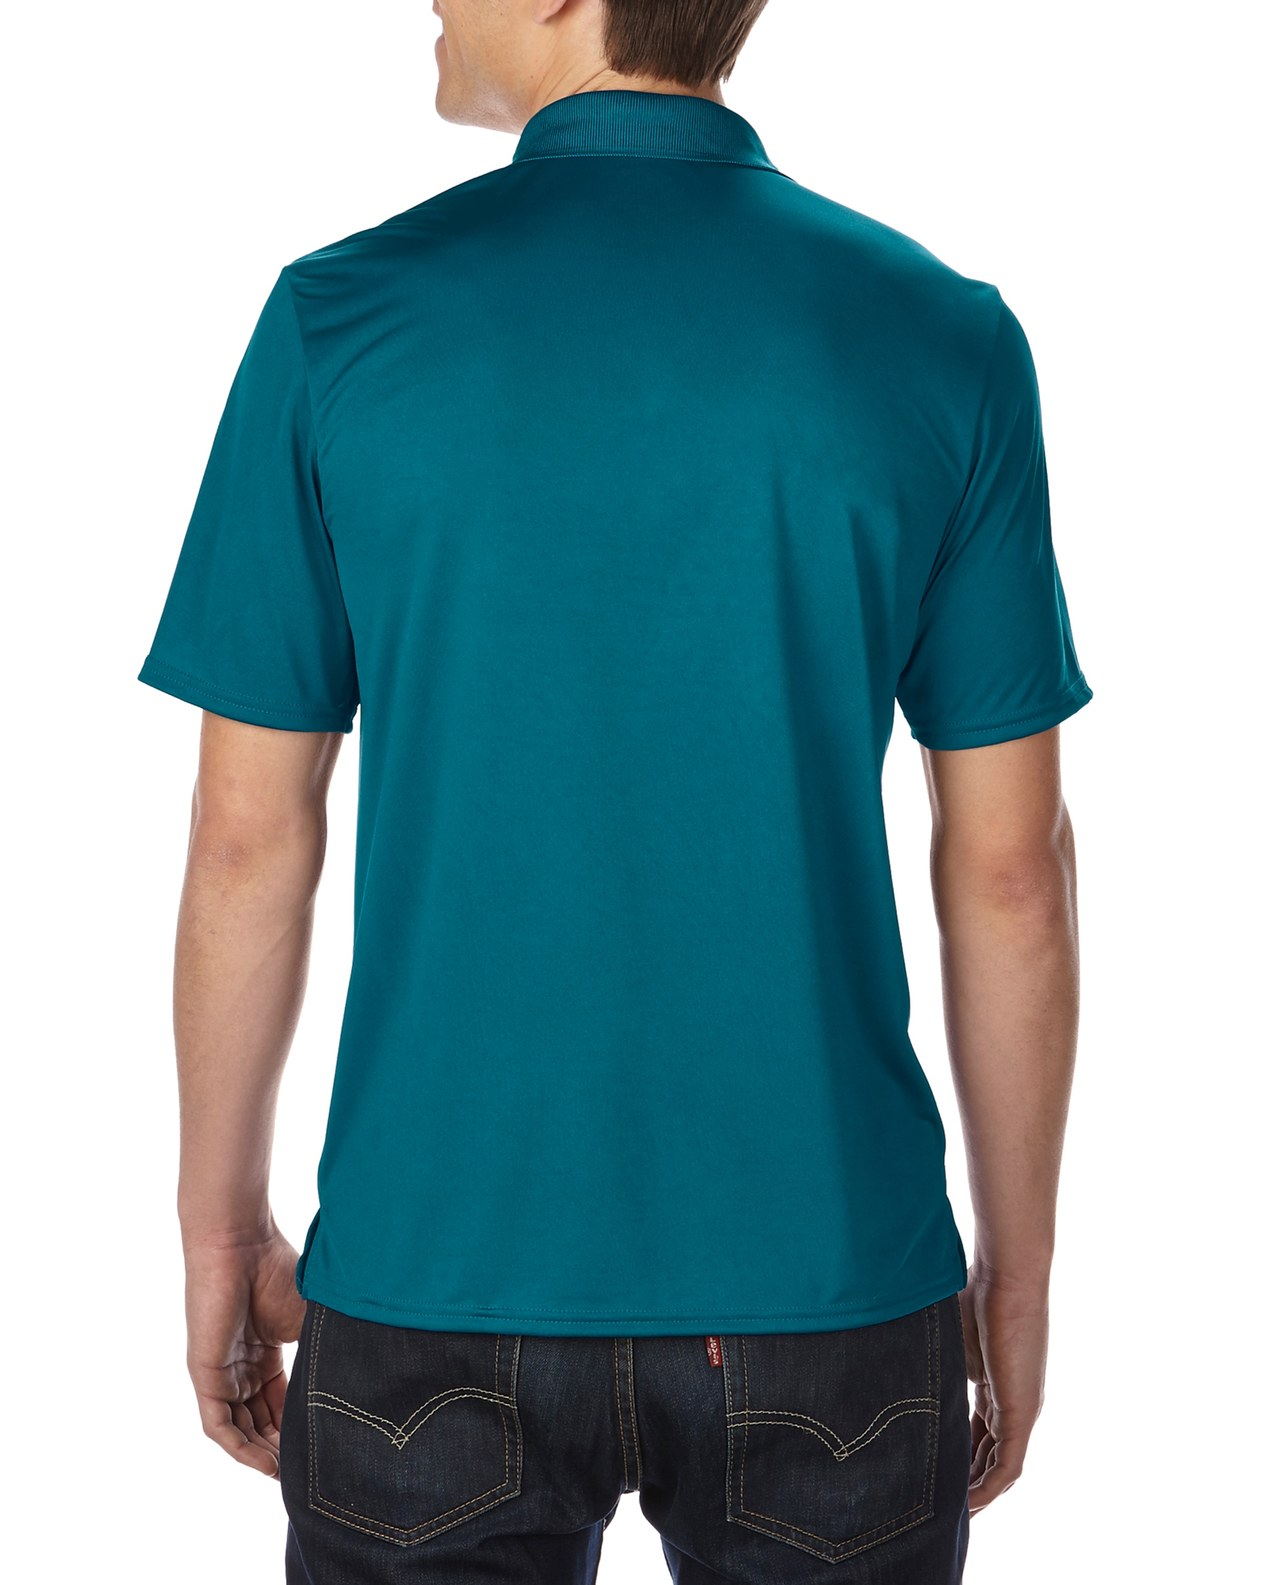 24fff3e0ebe 44800. Gildan Performance®. Adult Jersey Sport Shirt. Compare. Add to  Favorites. Fit